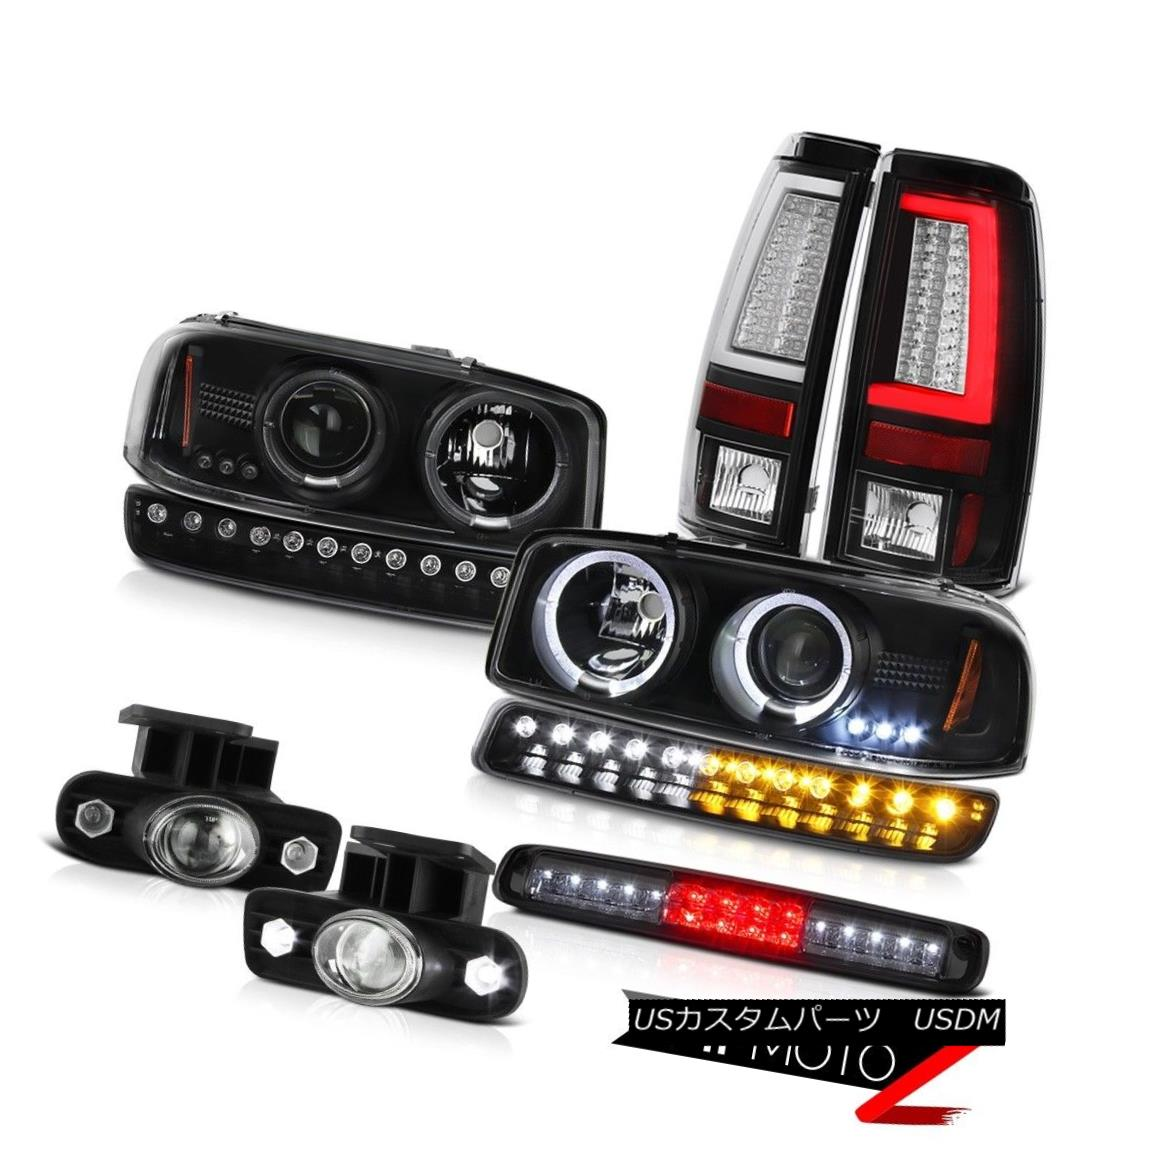 テールライト 99-02 Sierra SL Tail Lights Roof Brake Light Signal Fog Headlamps Tron Tube LED 99-02 Sierra SLテールライトルーフブレーキライト信号霧ヘッドランプTron Tube LED